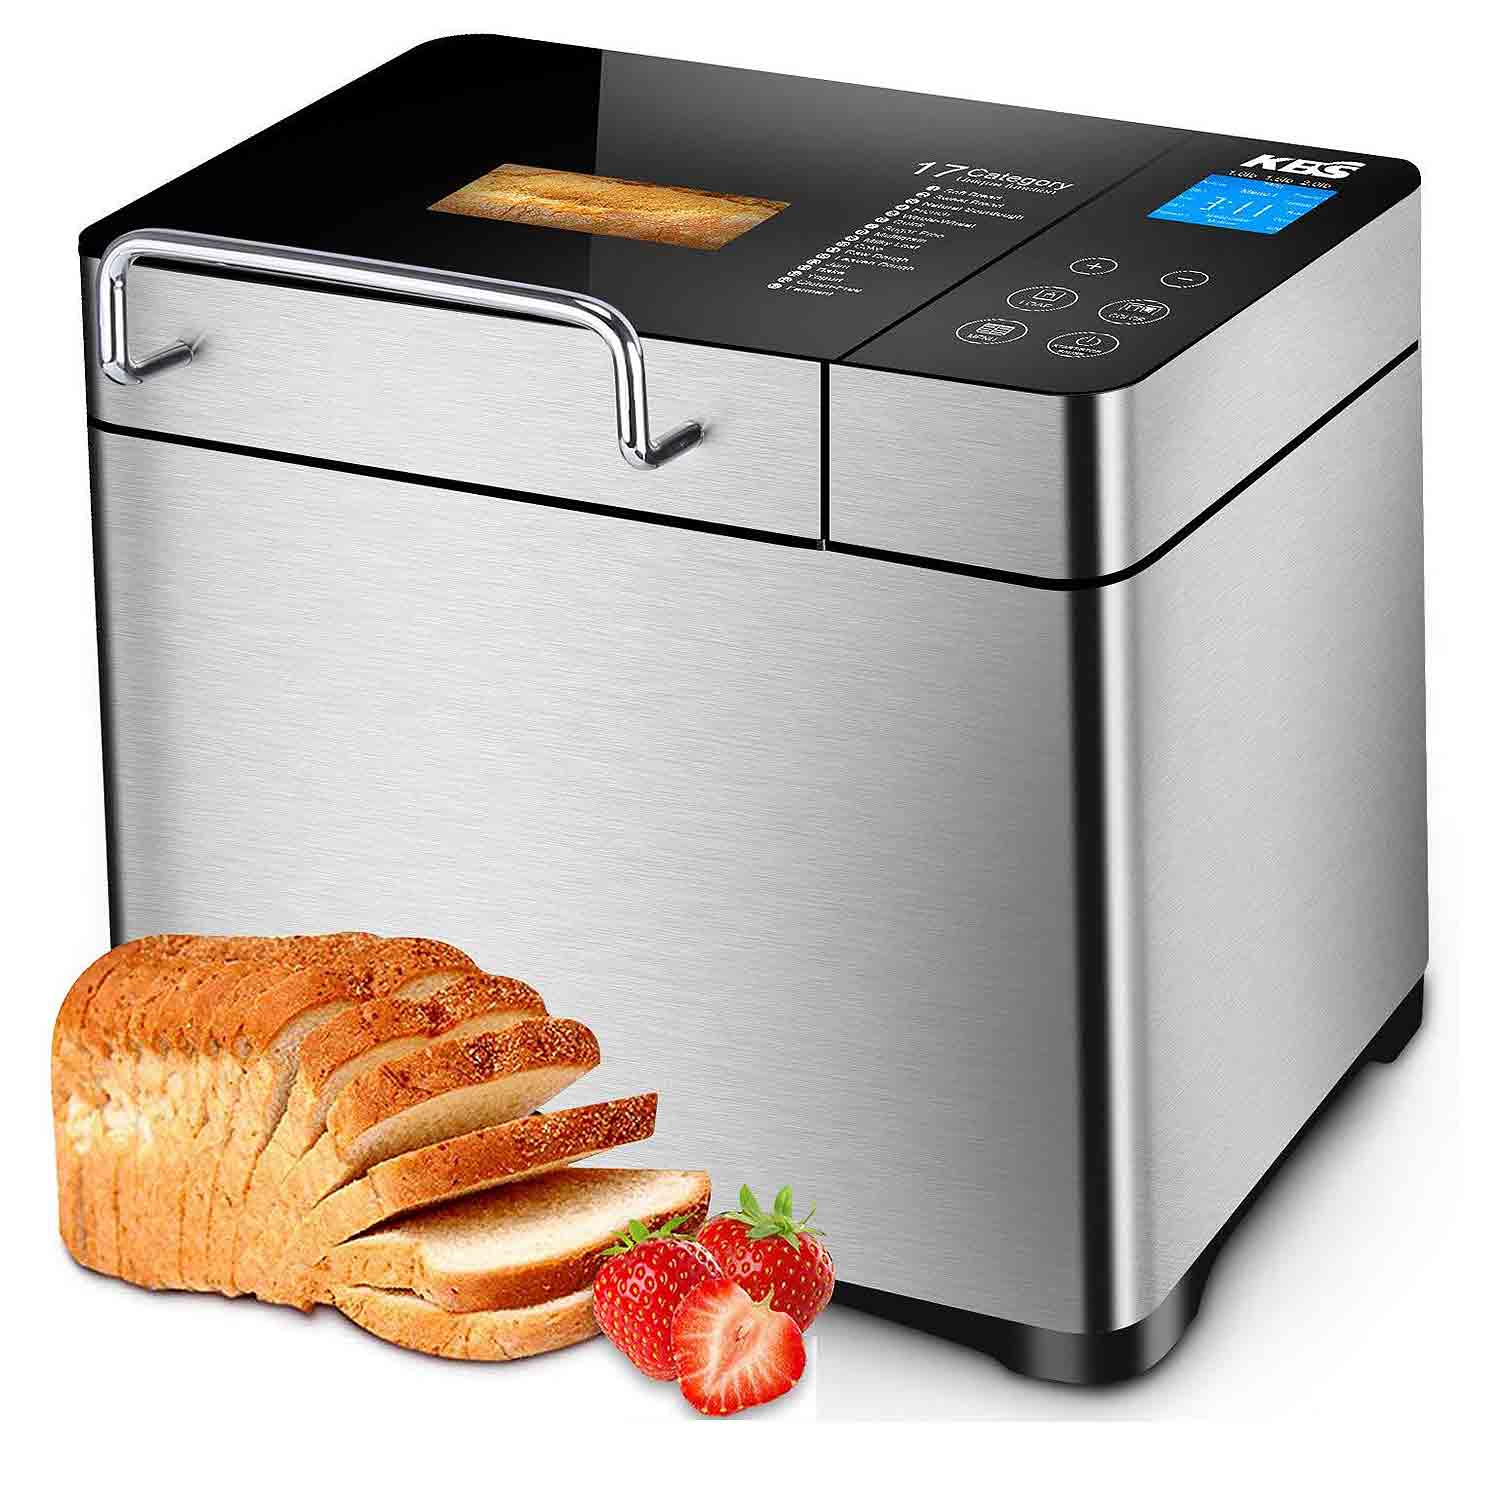 Breadman 2 lb Professional Bread Maker